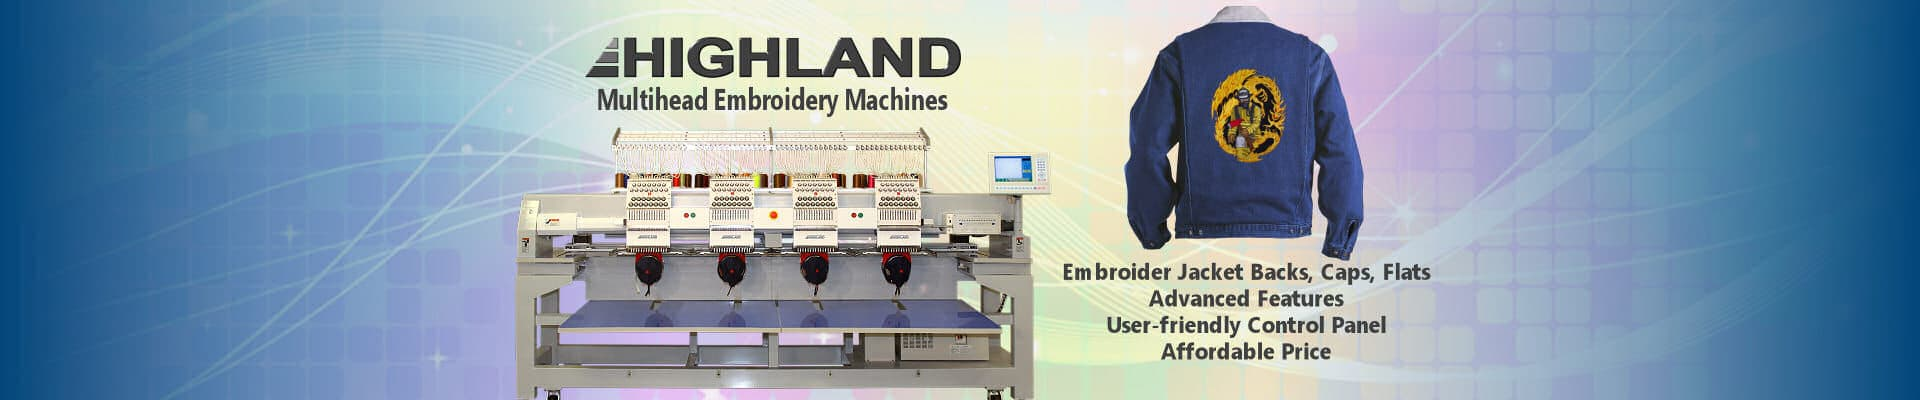 Highland Multihead Embroidery Machines